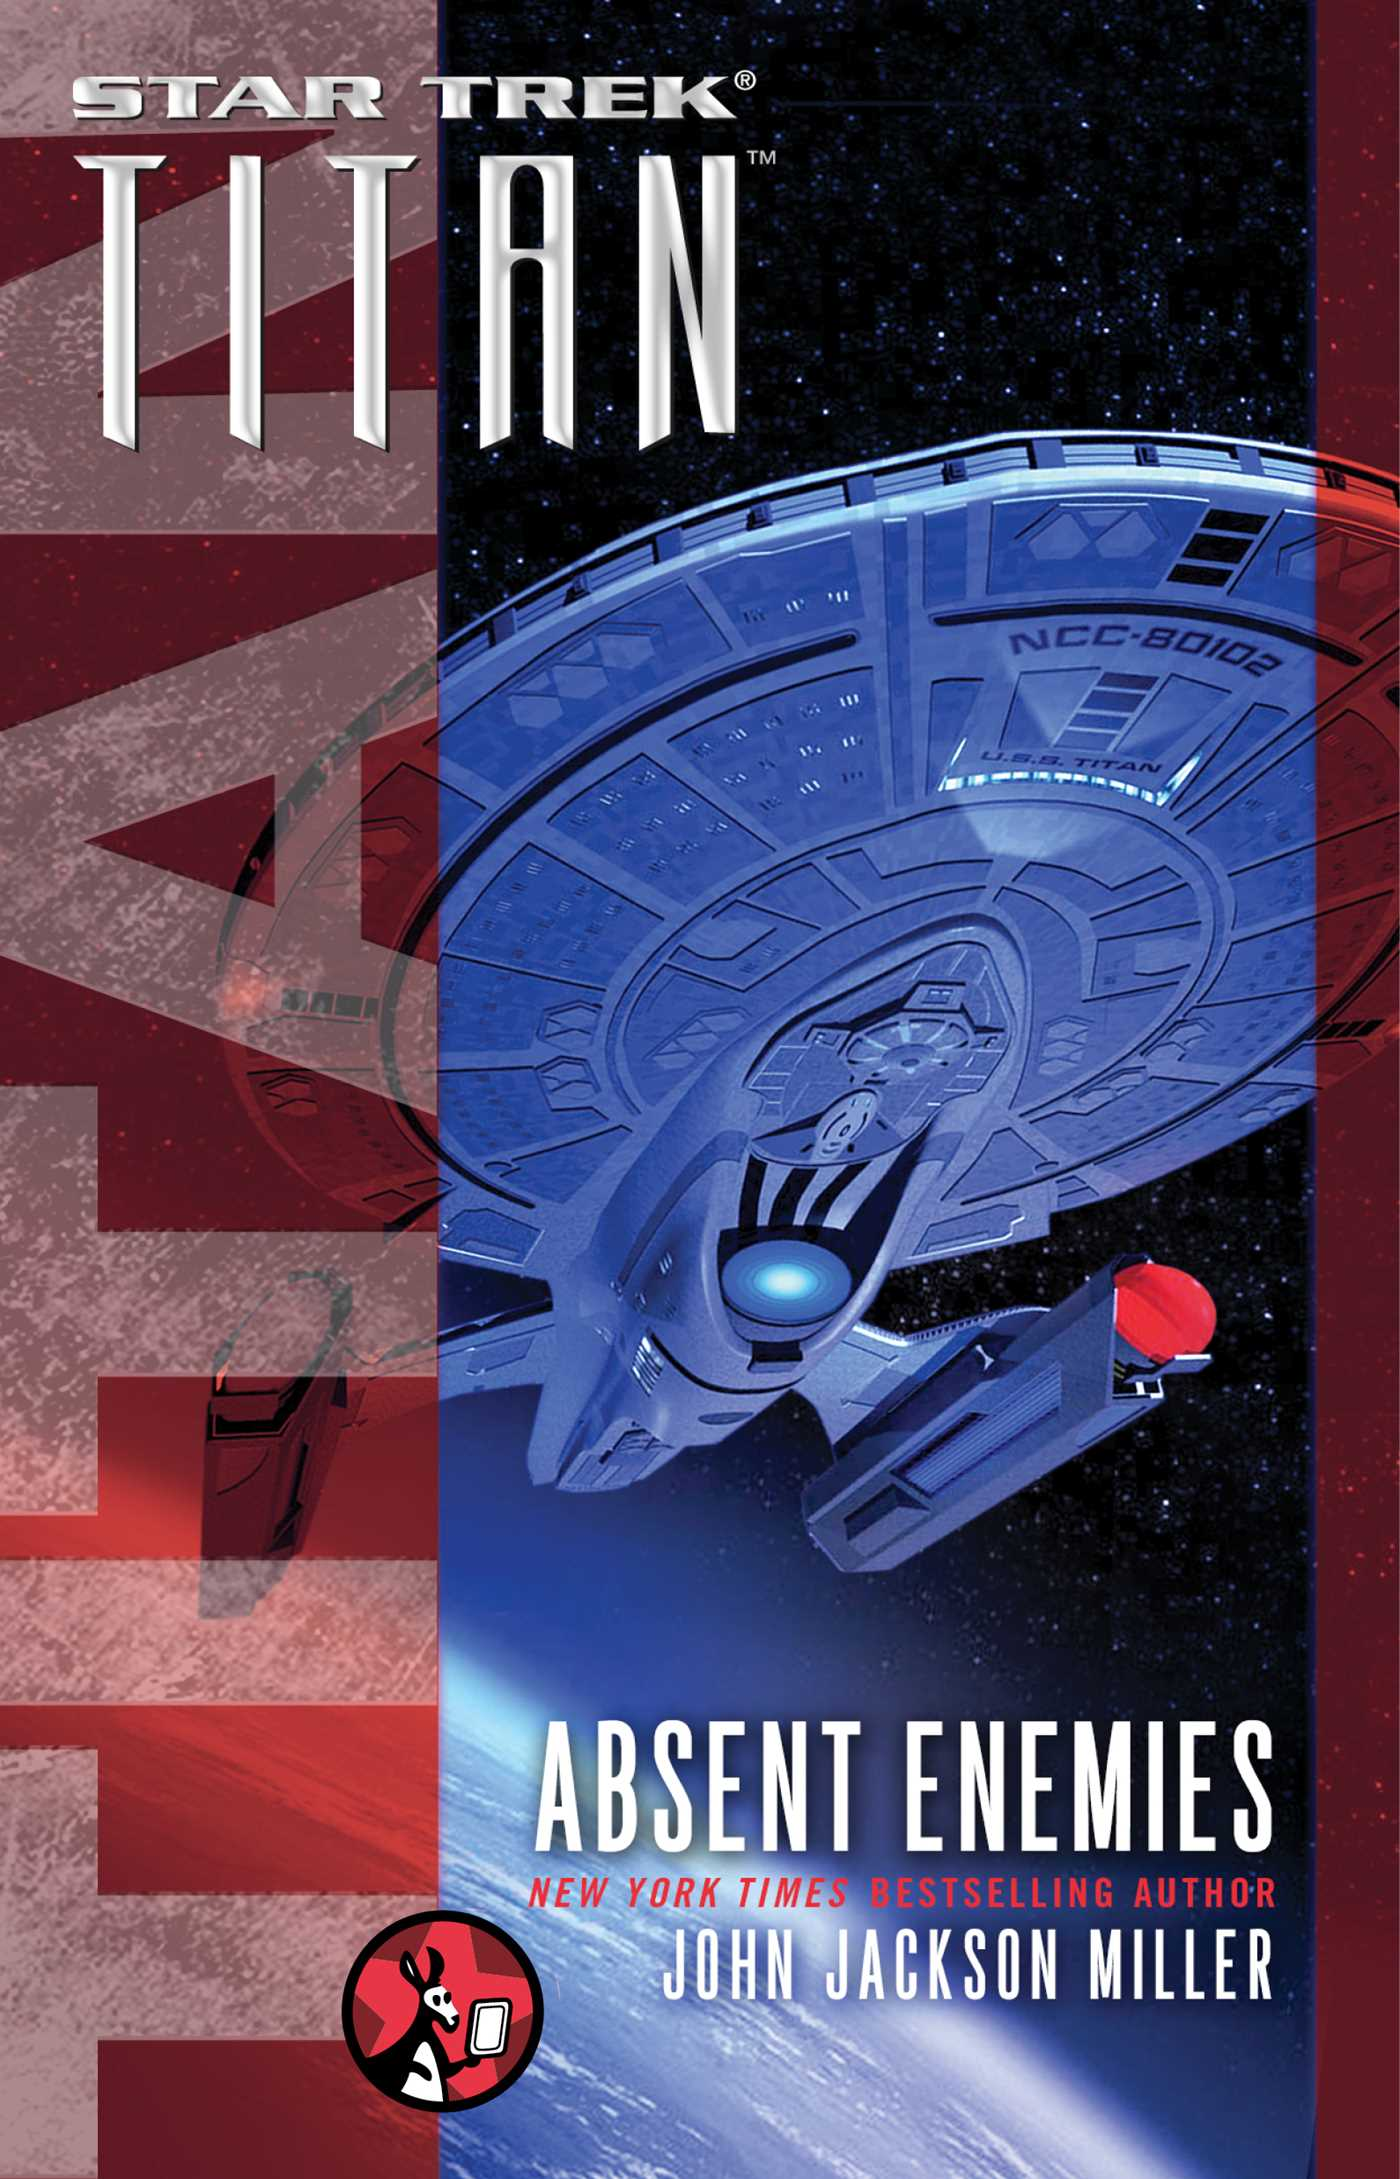 Star-trek-titan-absent-enemies-9781476762999_hr